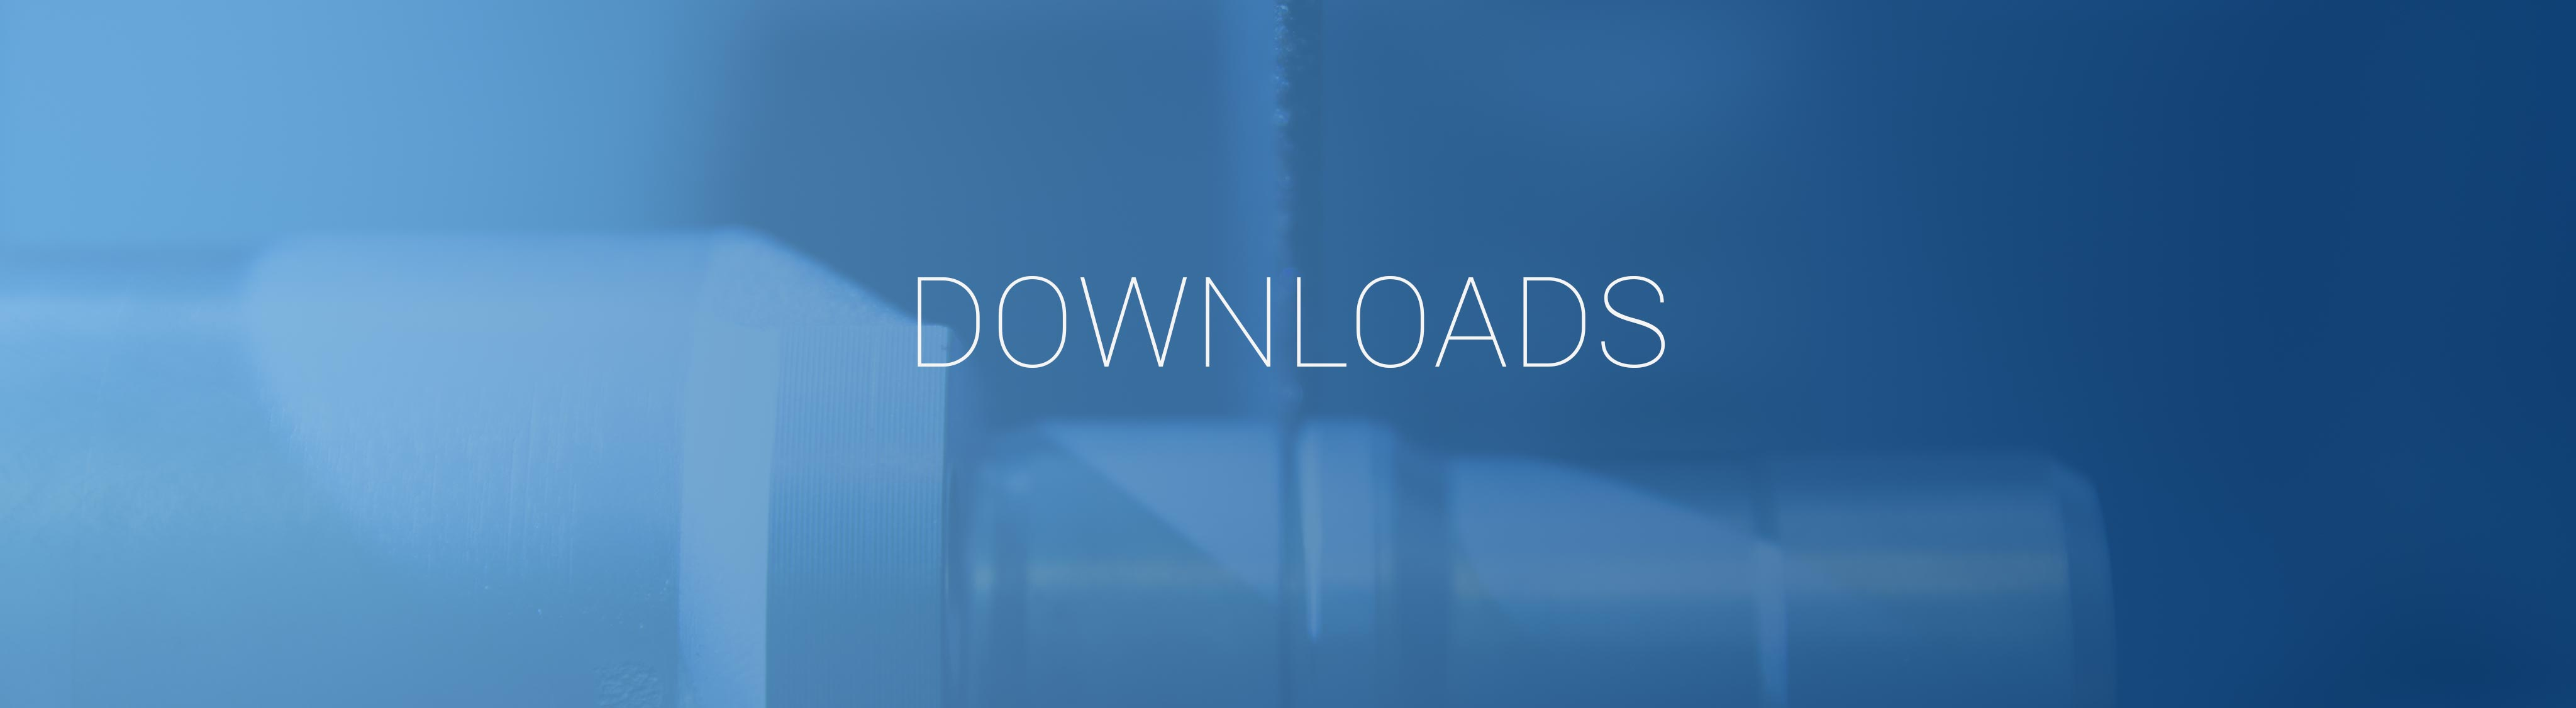 QP_Downloads